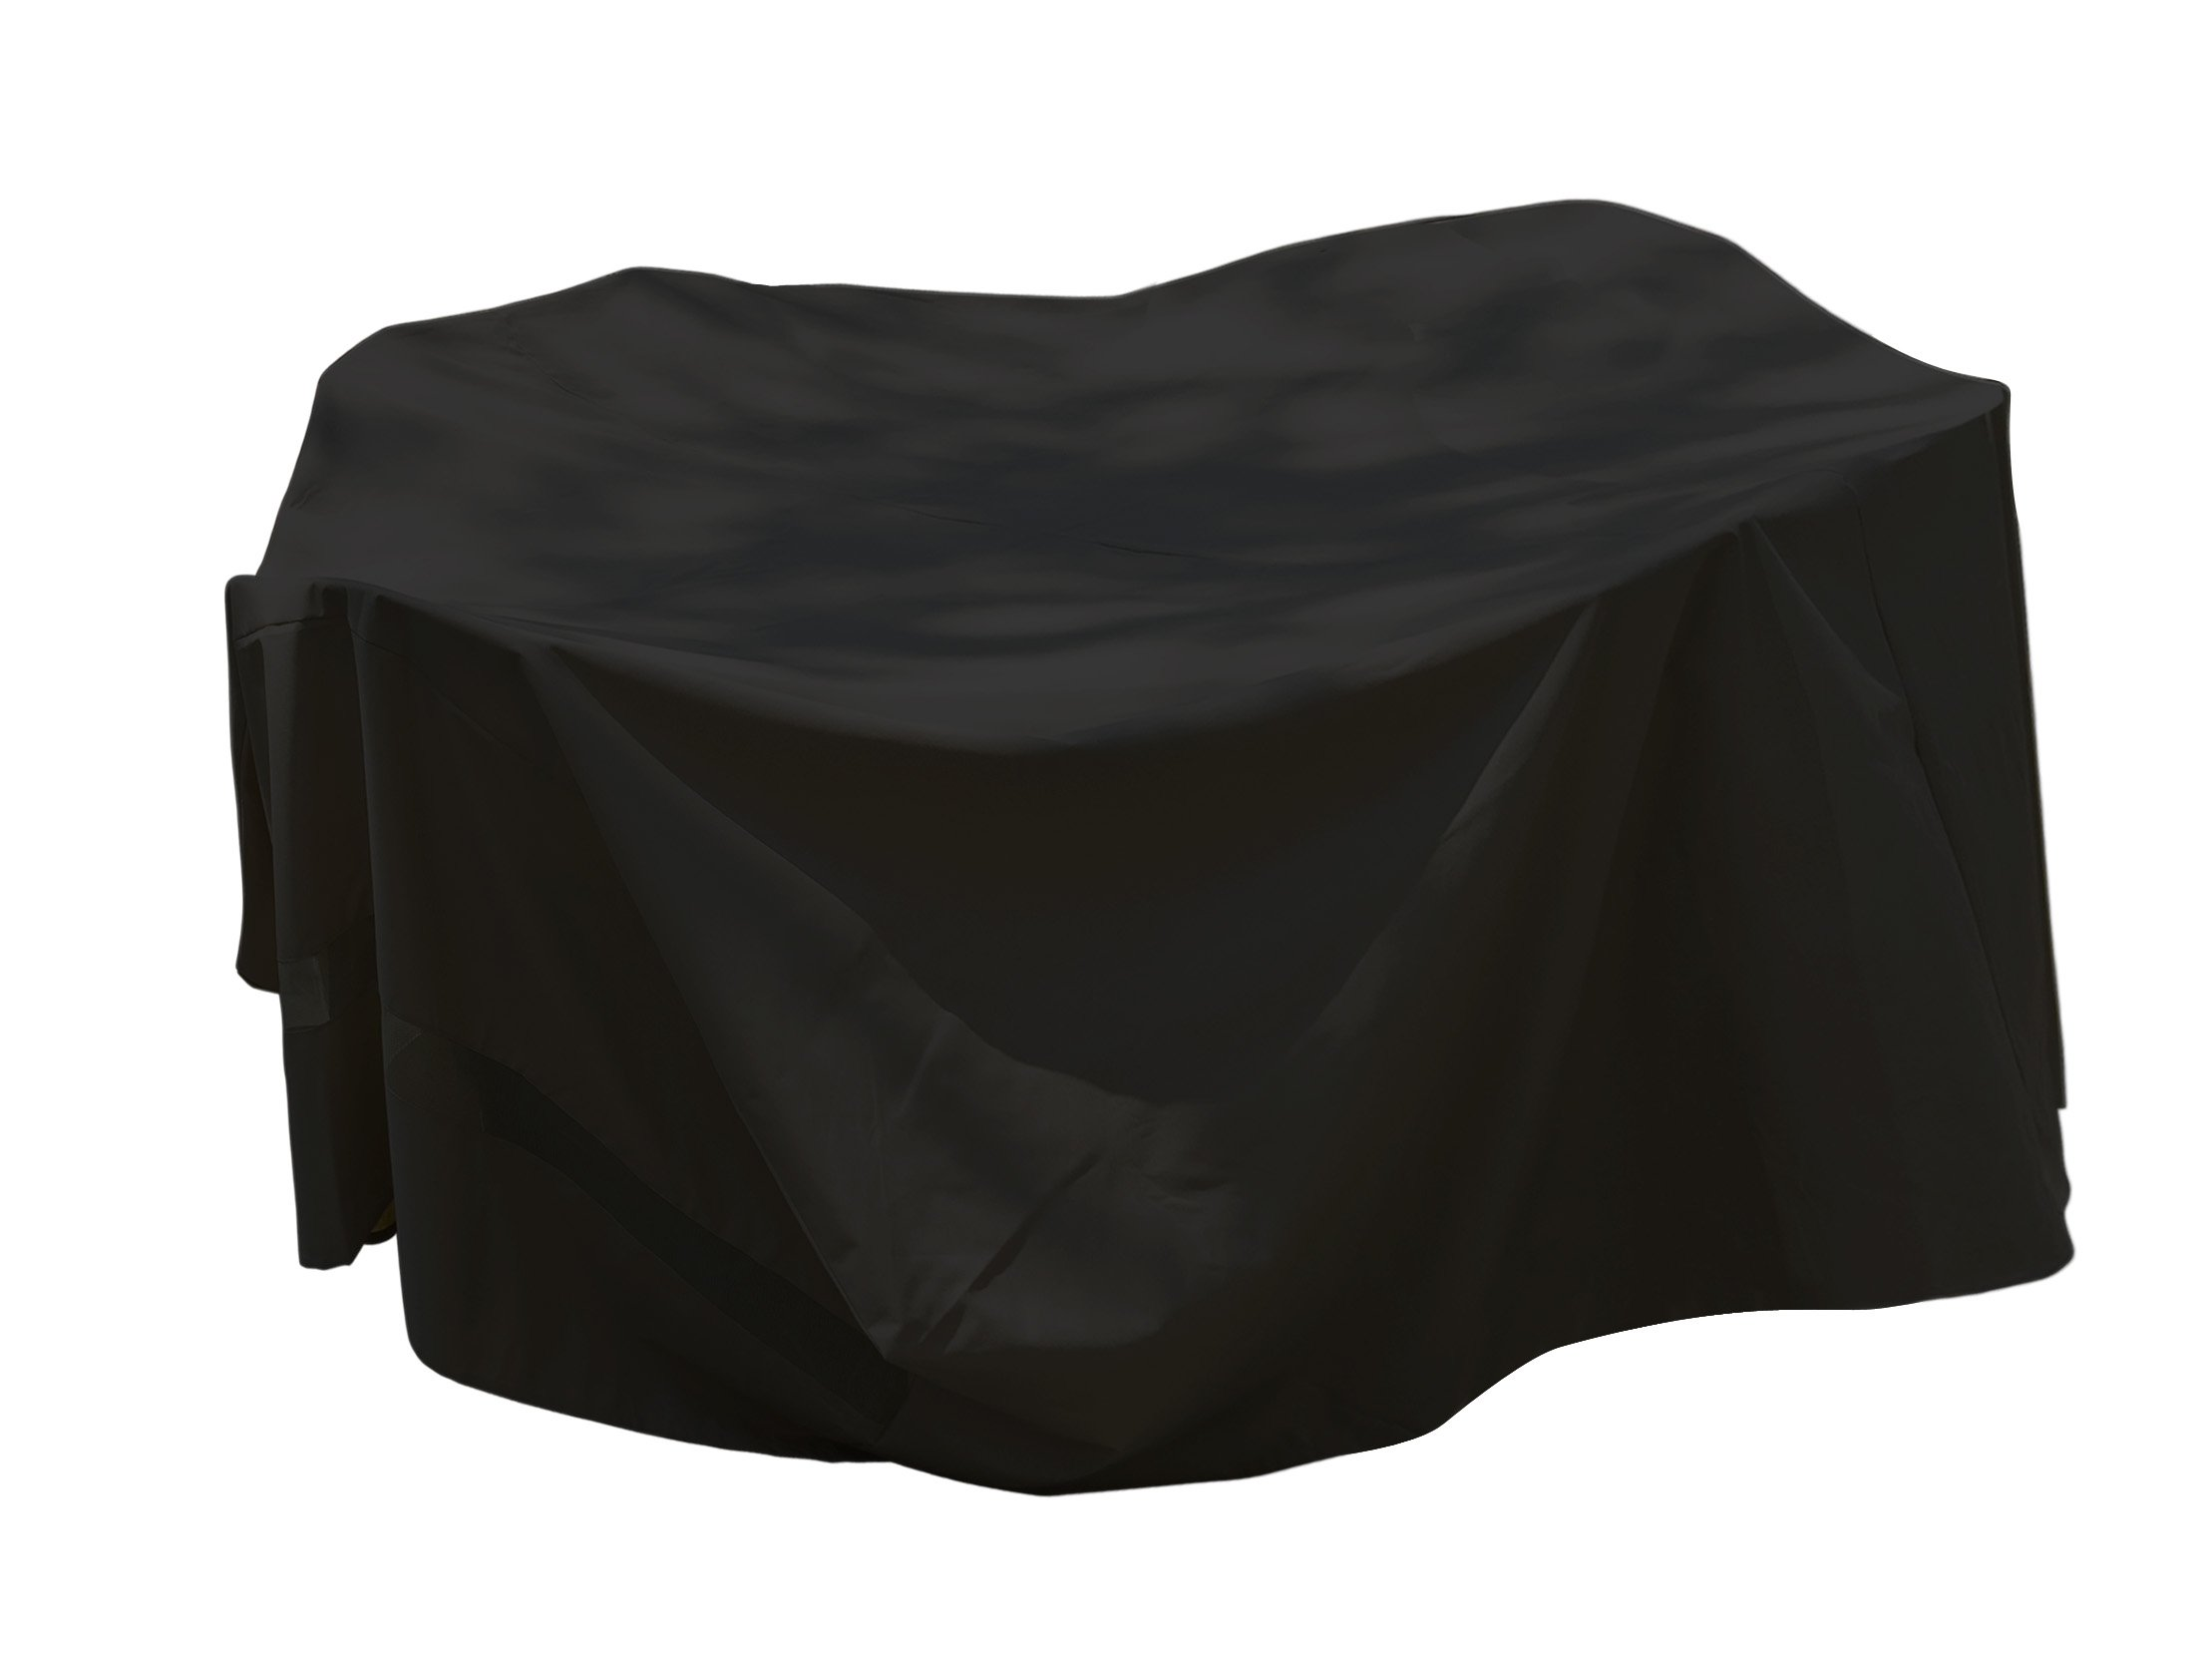 Backyard Basics 07217GDBB Large Rectangle Patio Set Cover, 114-Inch by 72-Inch by 30-Inch